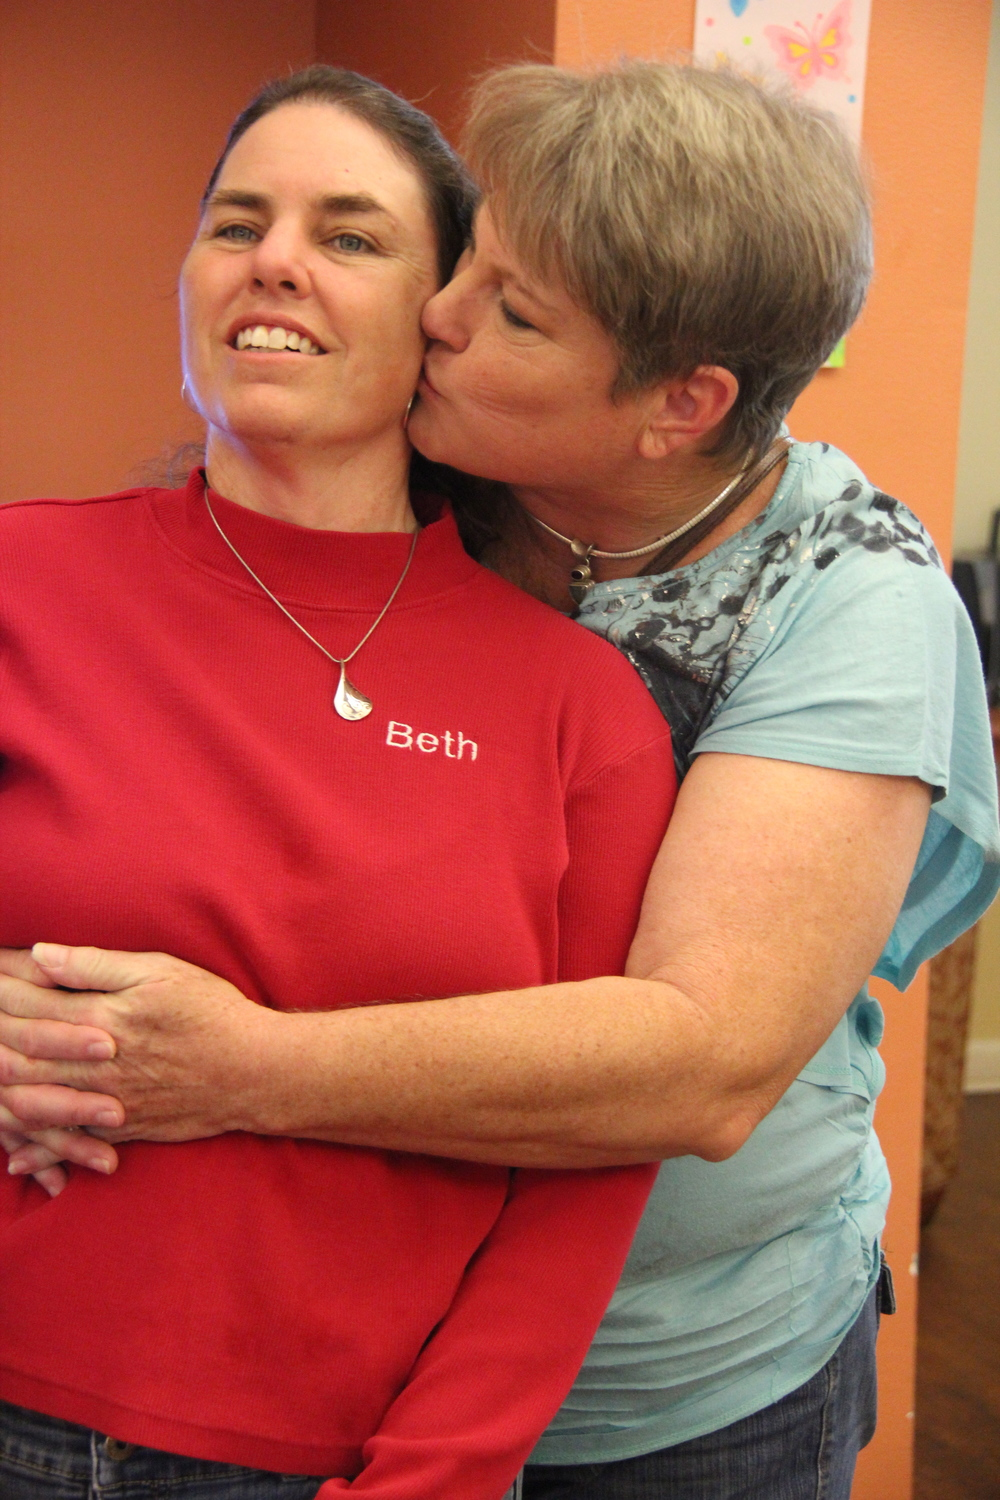 Cheryl visits her sister Beth at the senior living facility in Tucson, Ariz.